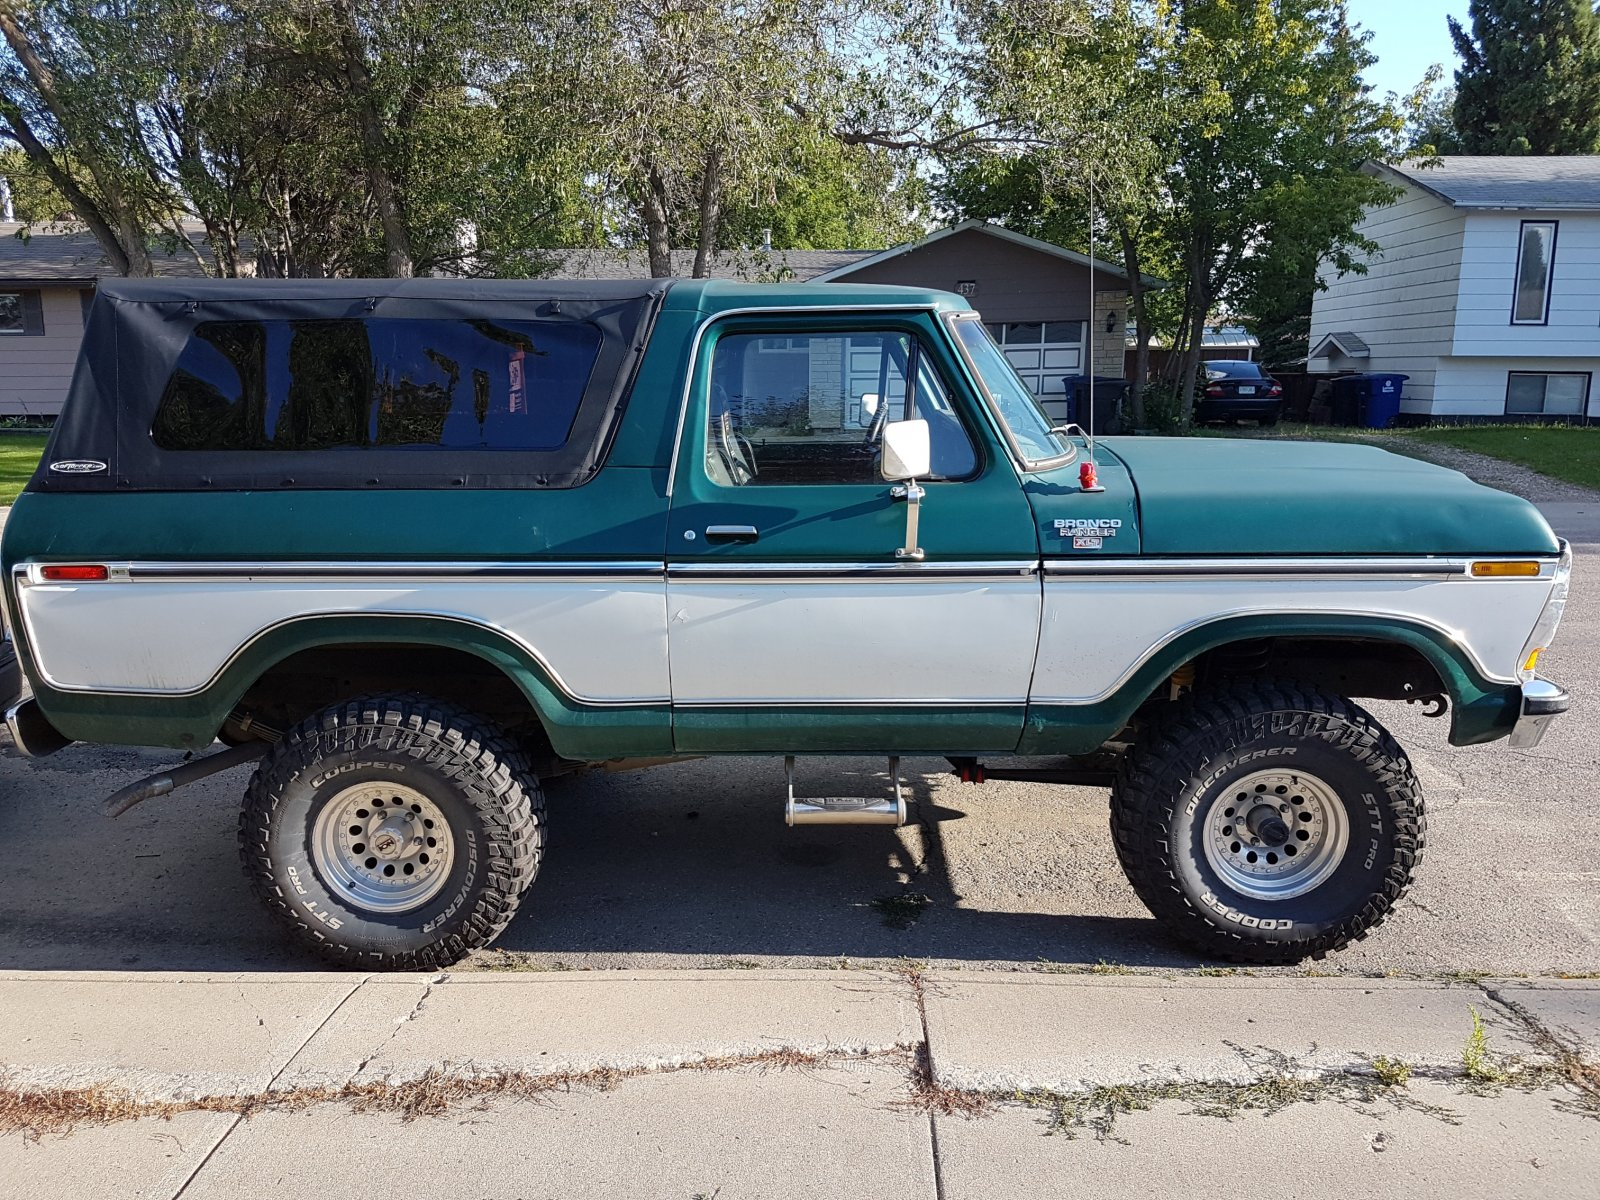 1979 Ford Bronco With a 400 Engine 2.jpg